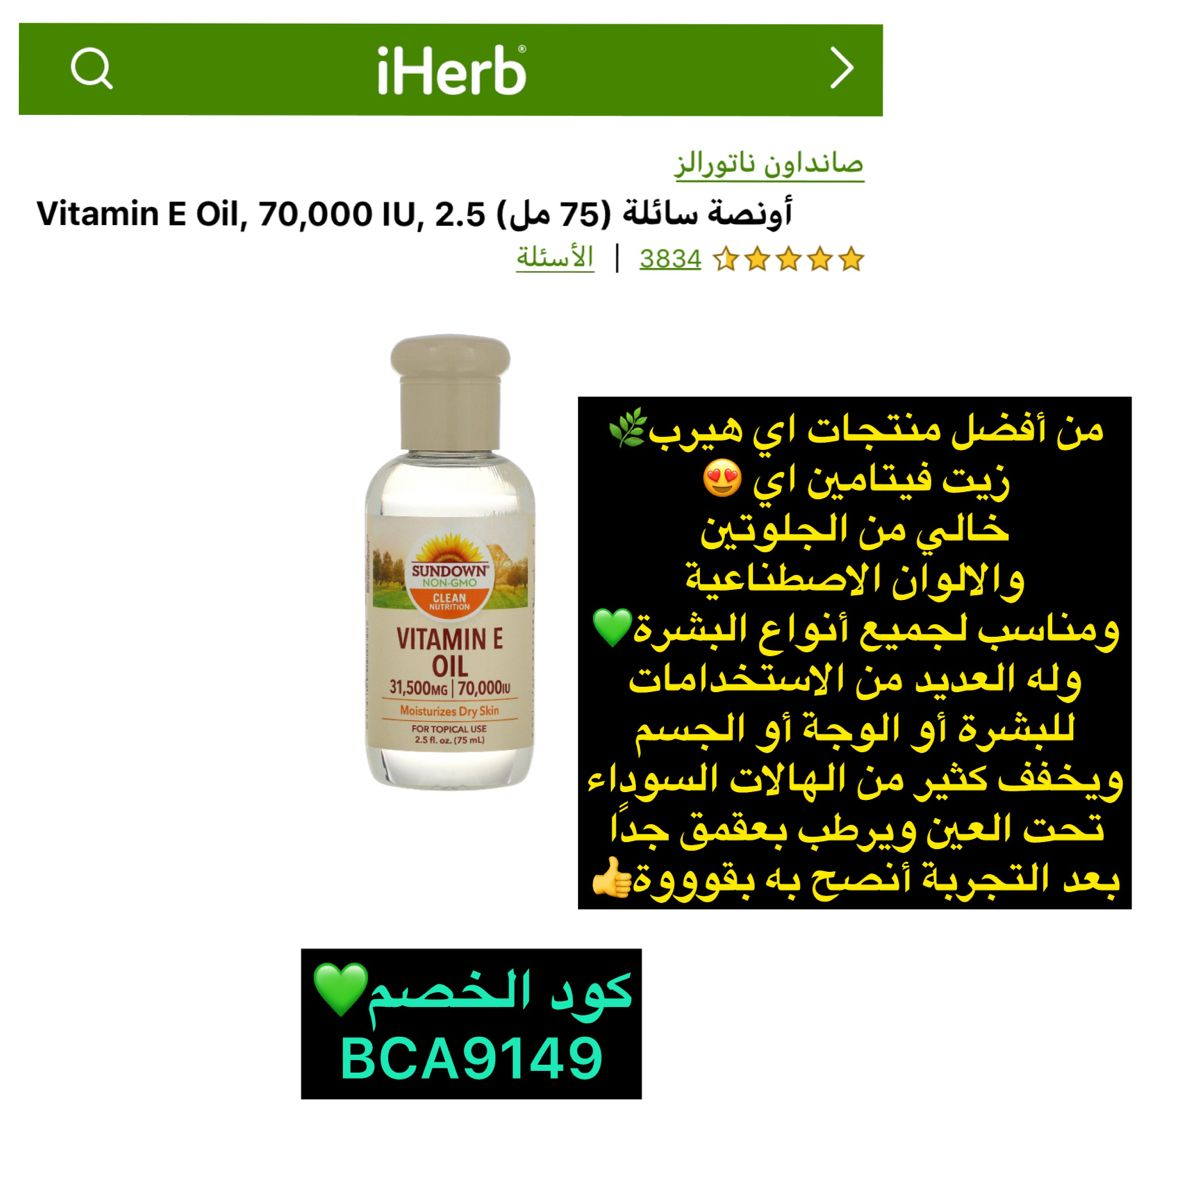 كود خصم ايهيرب Bca9149 Vitamin E Oil Natural Vitamin E Natural Vitamins